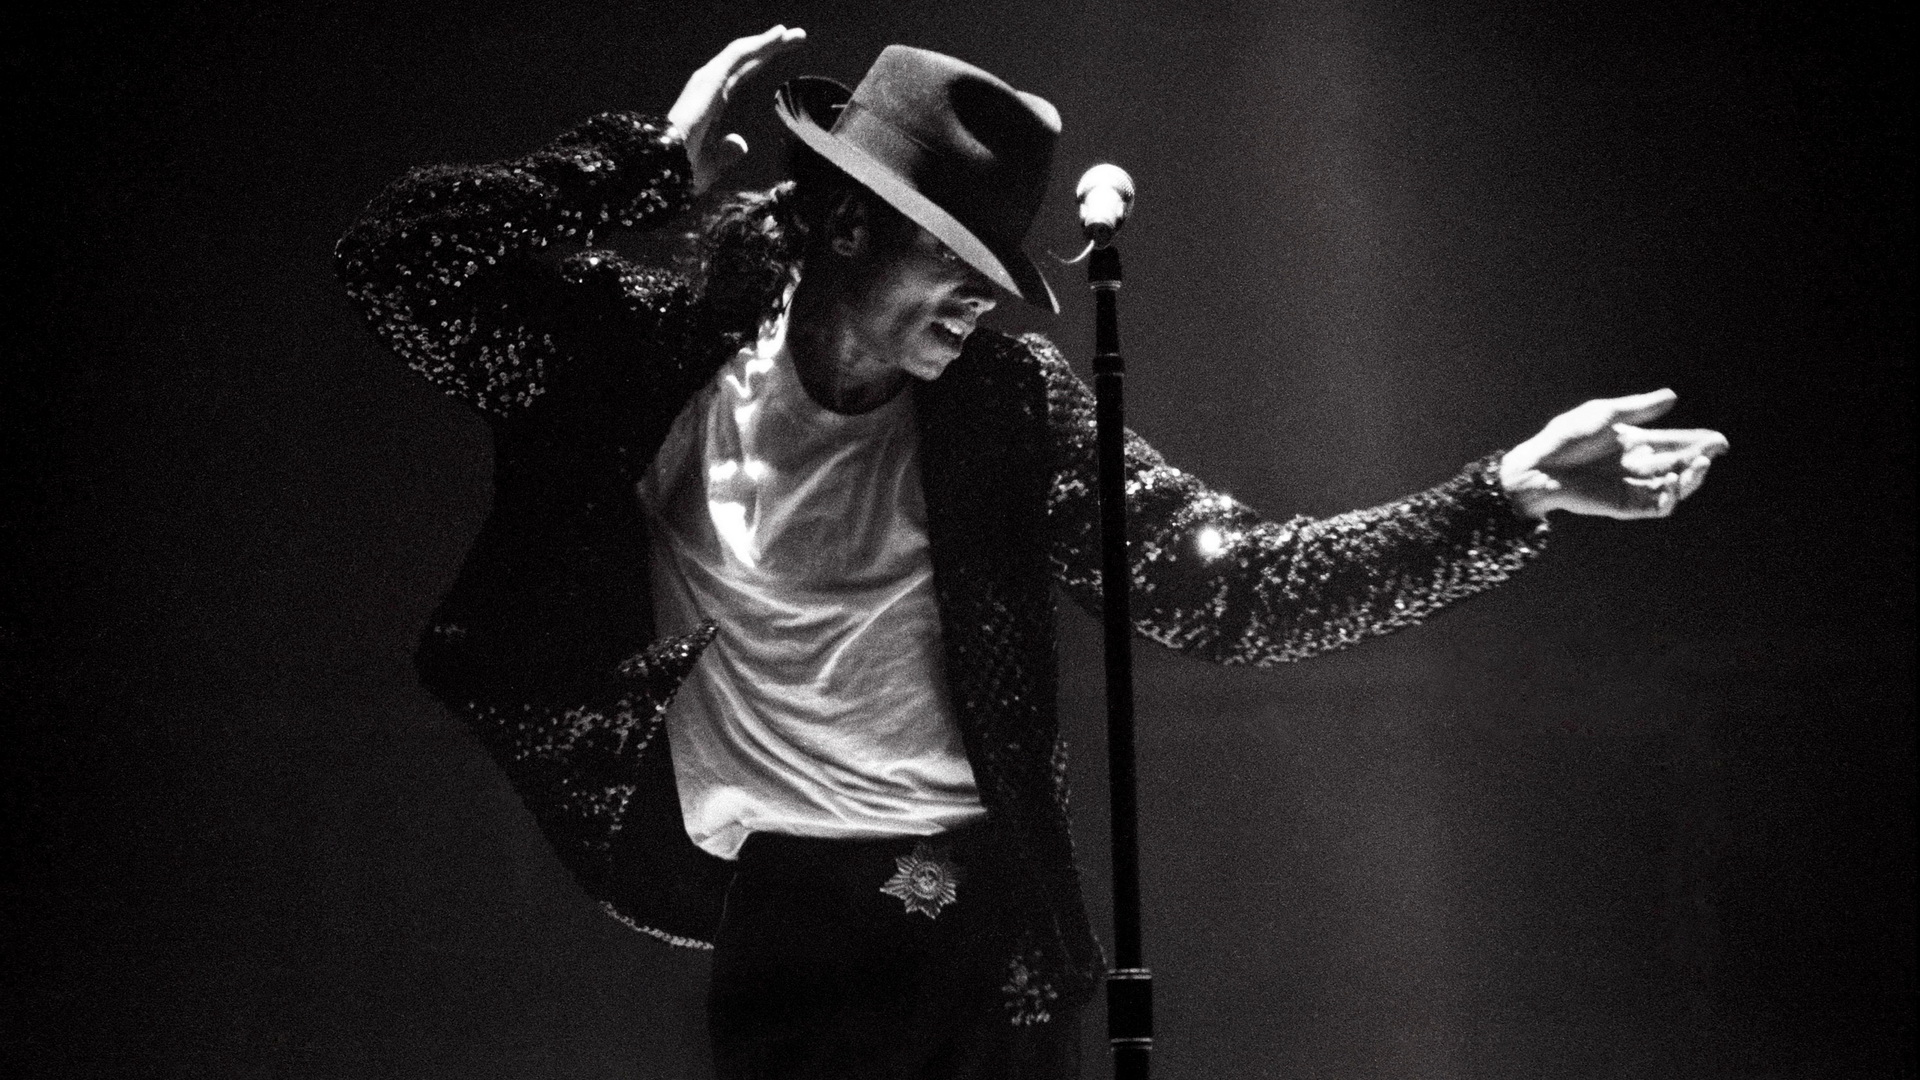 Michael Jackson Performing On Stage